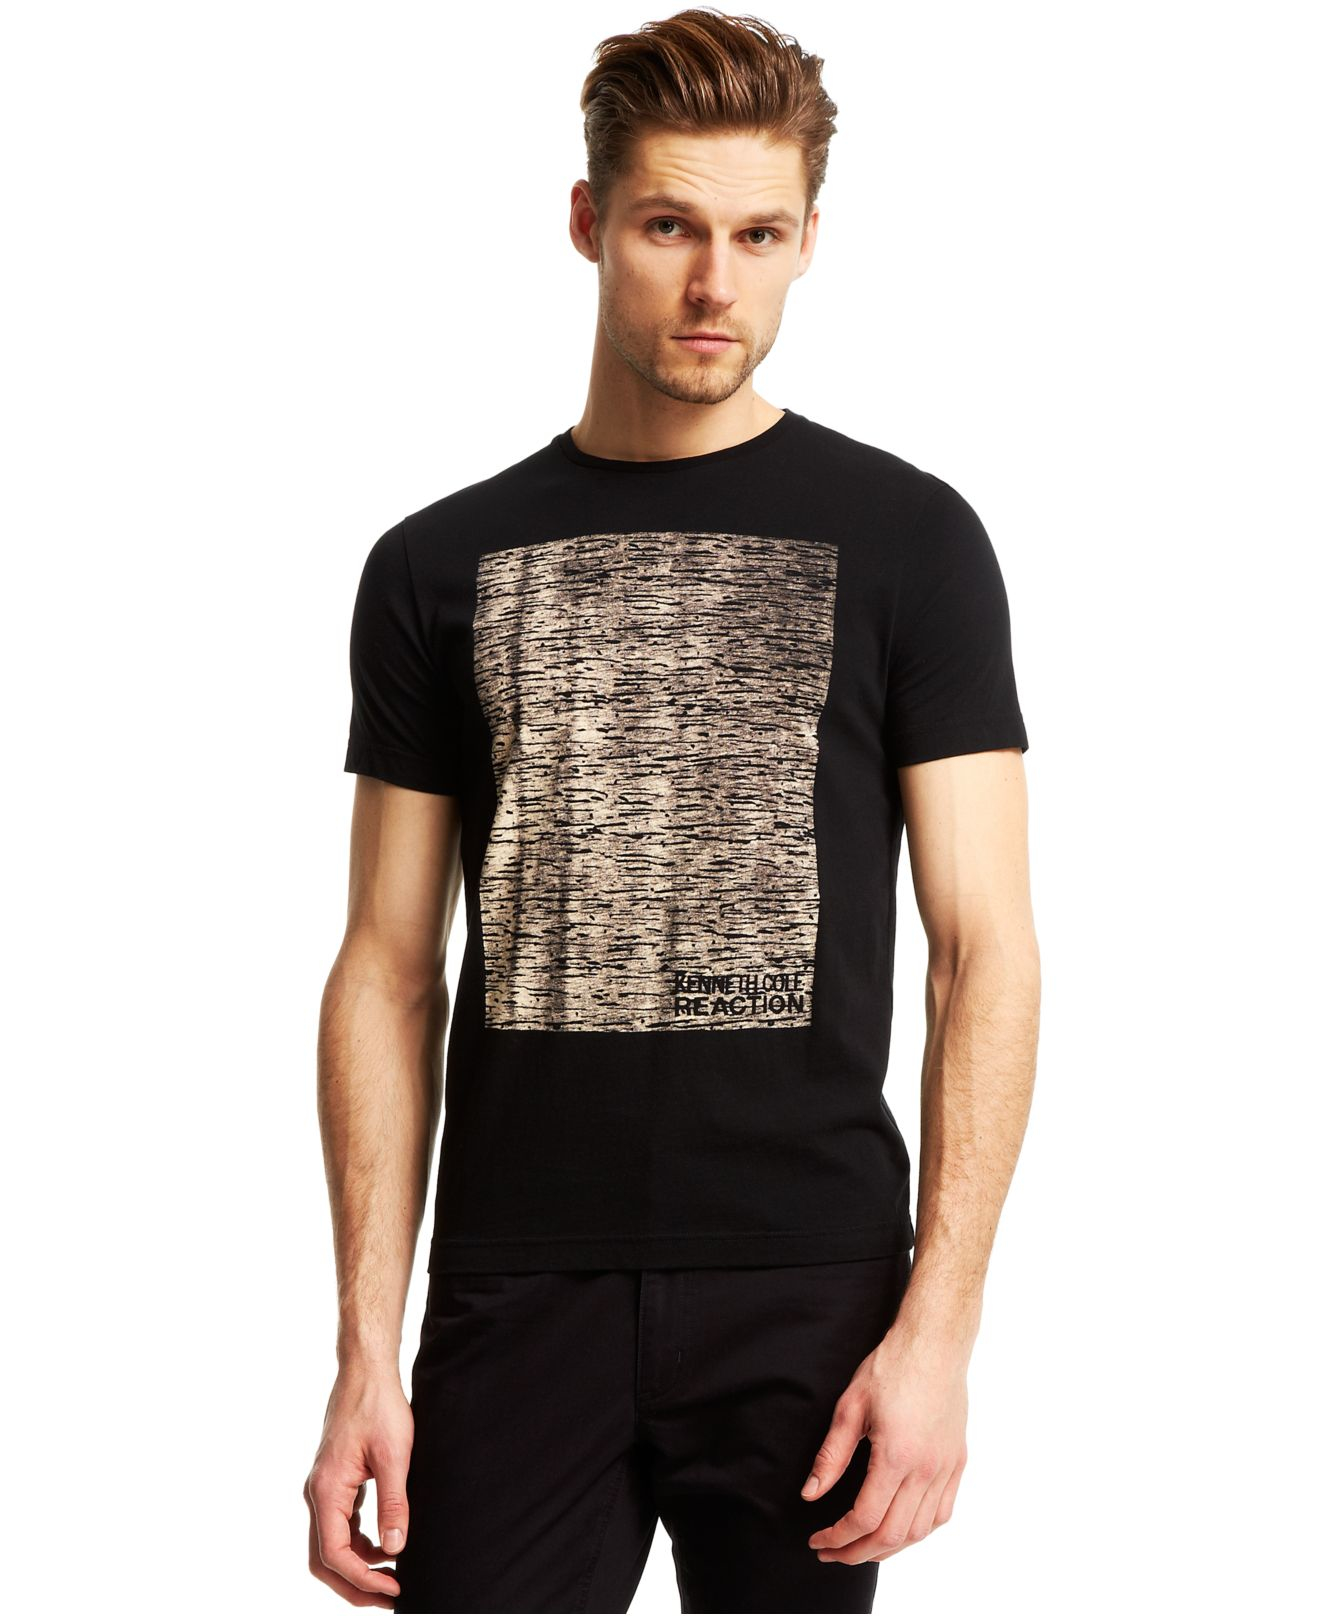 kenneth cole reaction crewneck graphic logo tshirt in